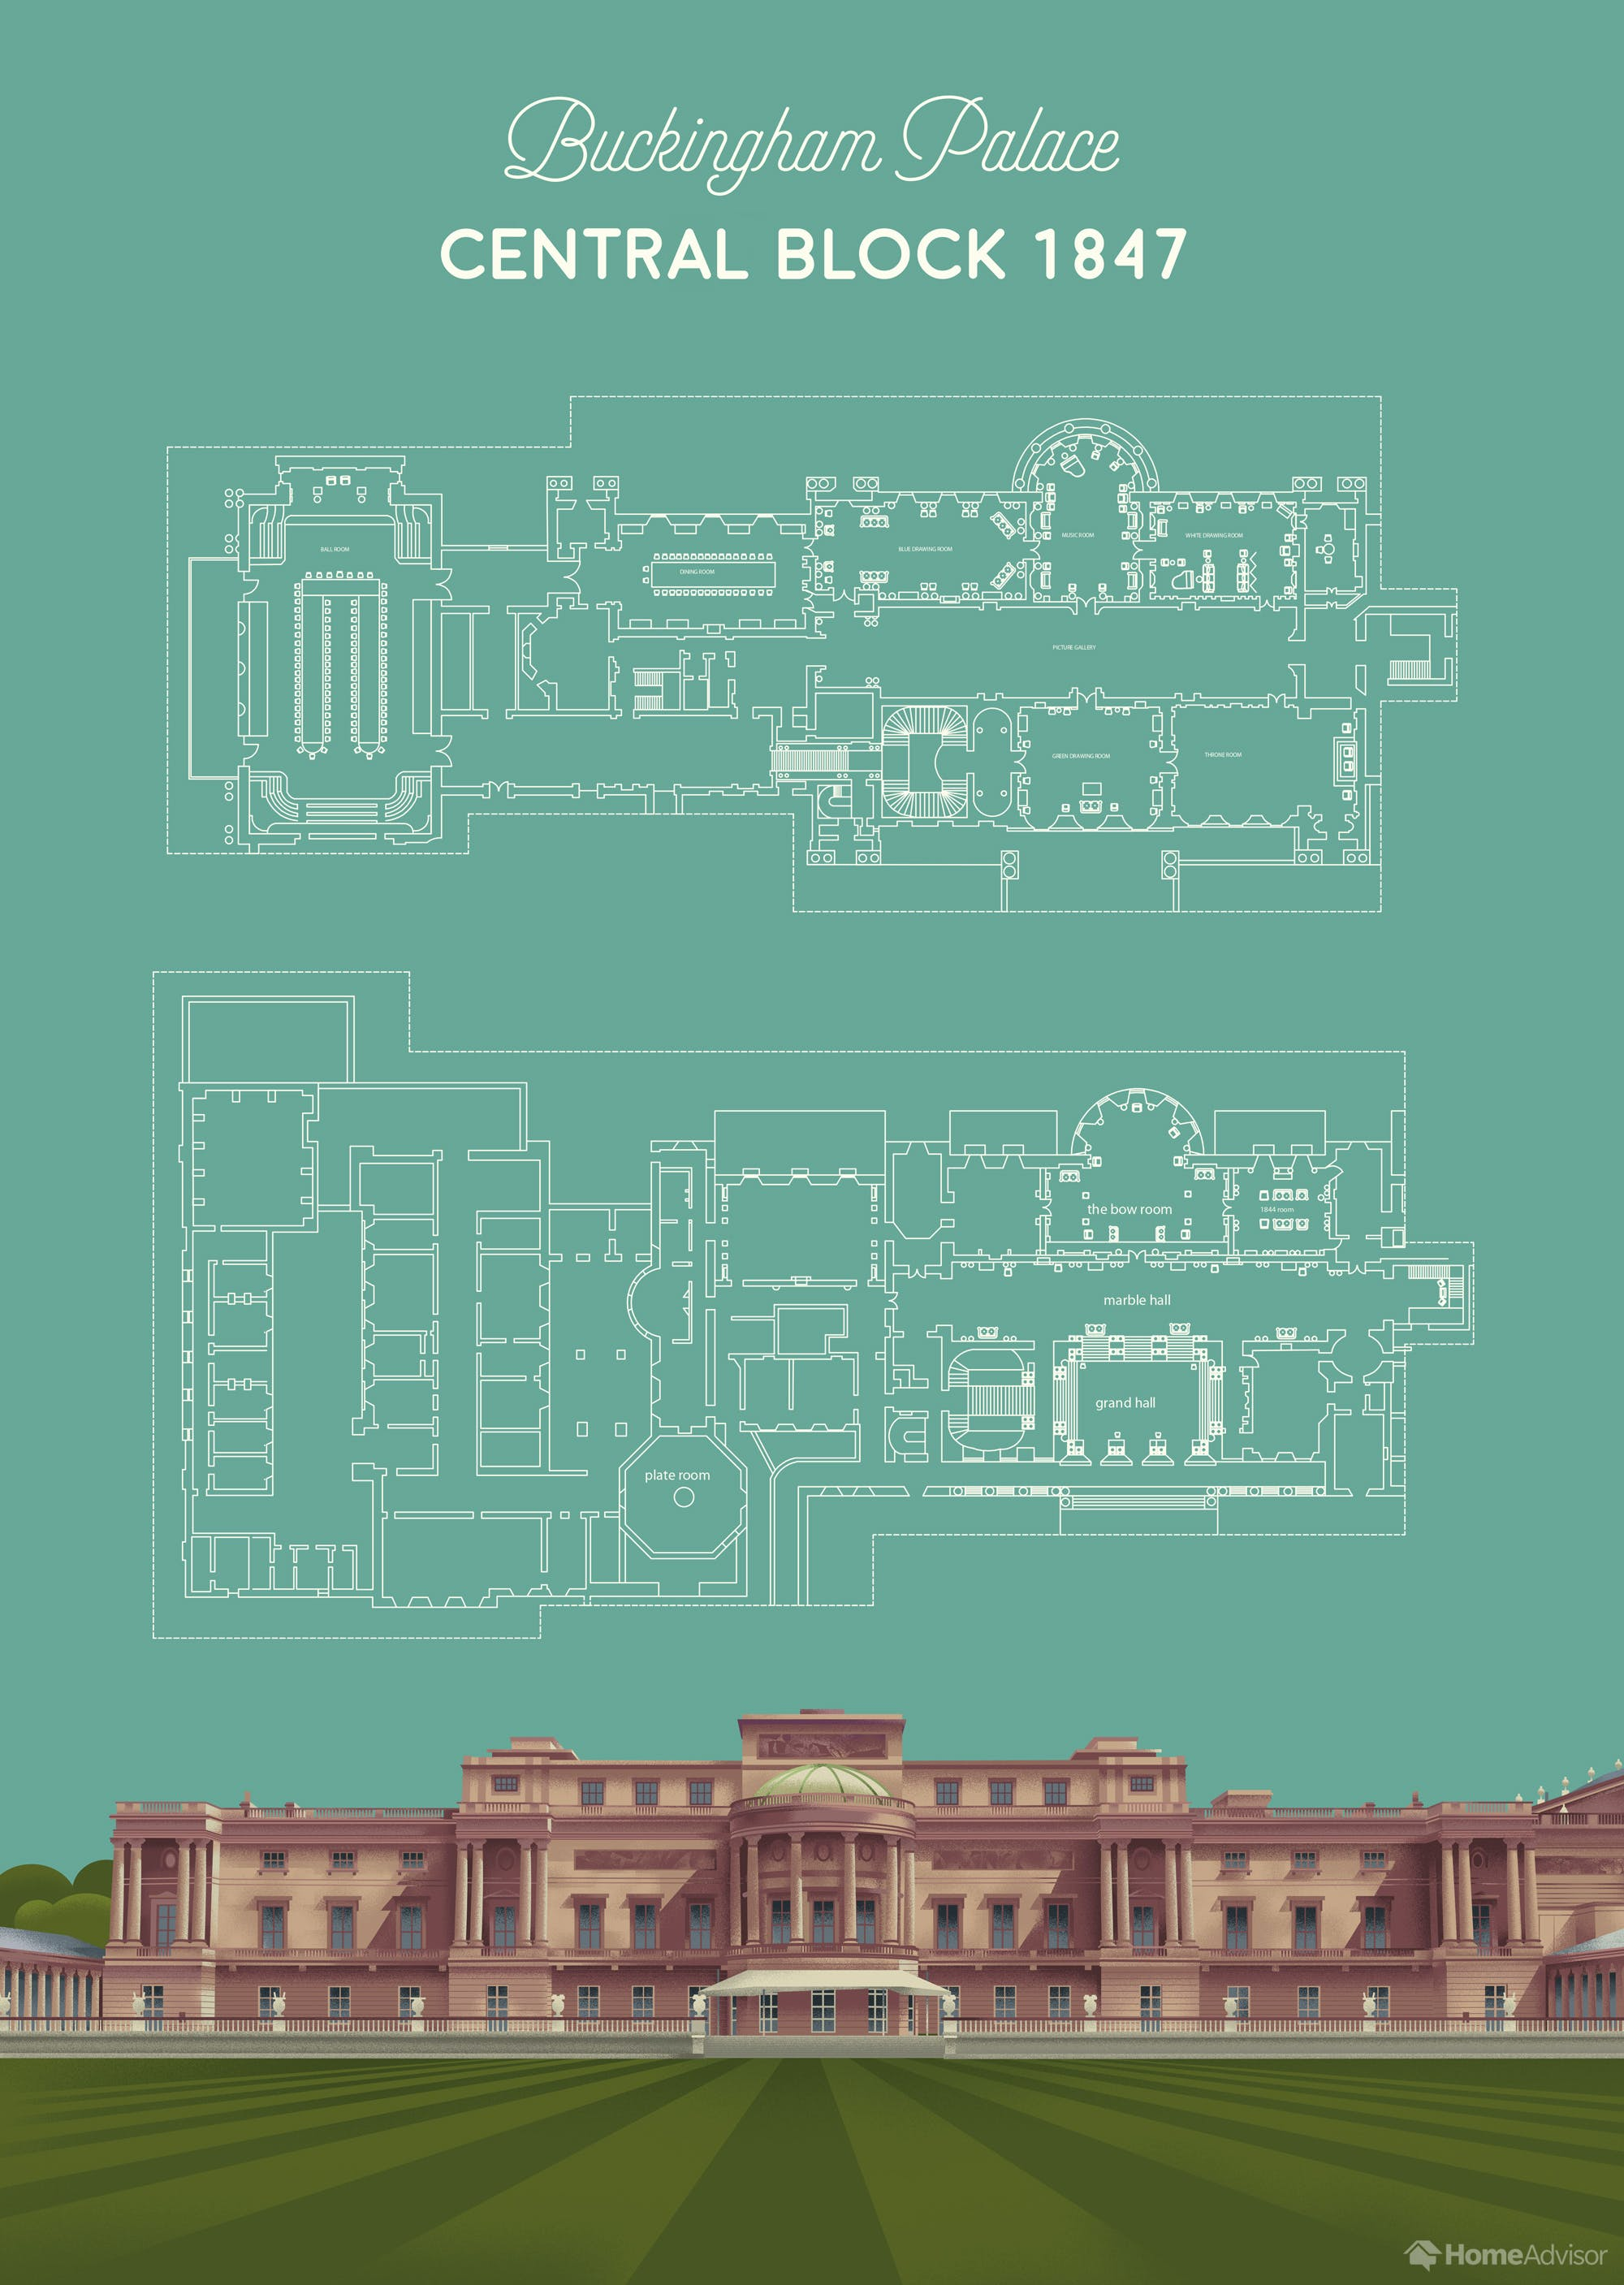 01 1 Buckingham Palace Central Block Floor Plan